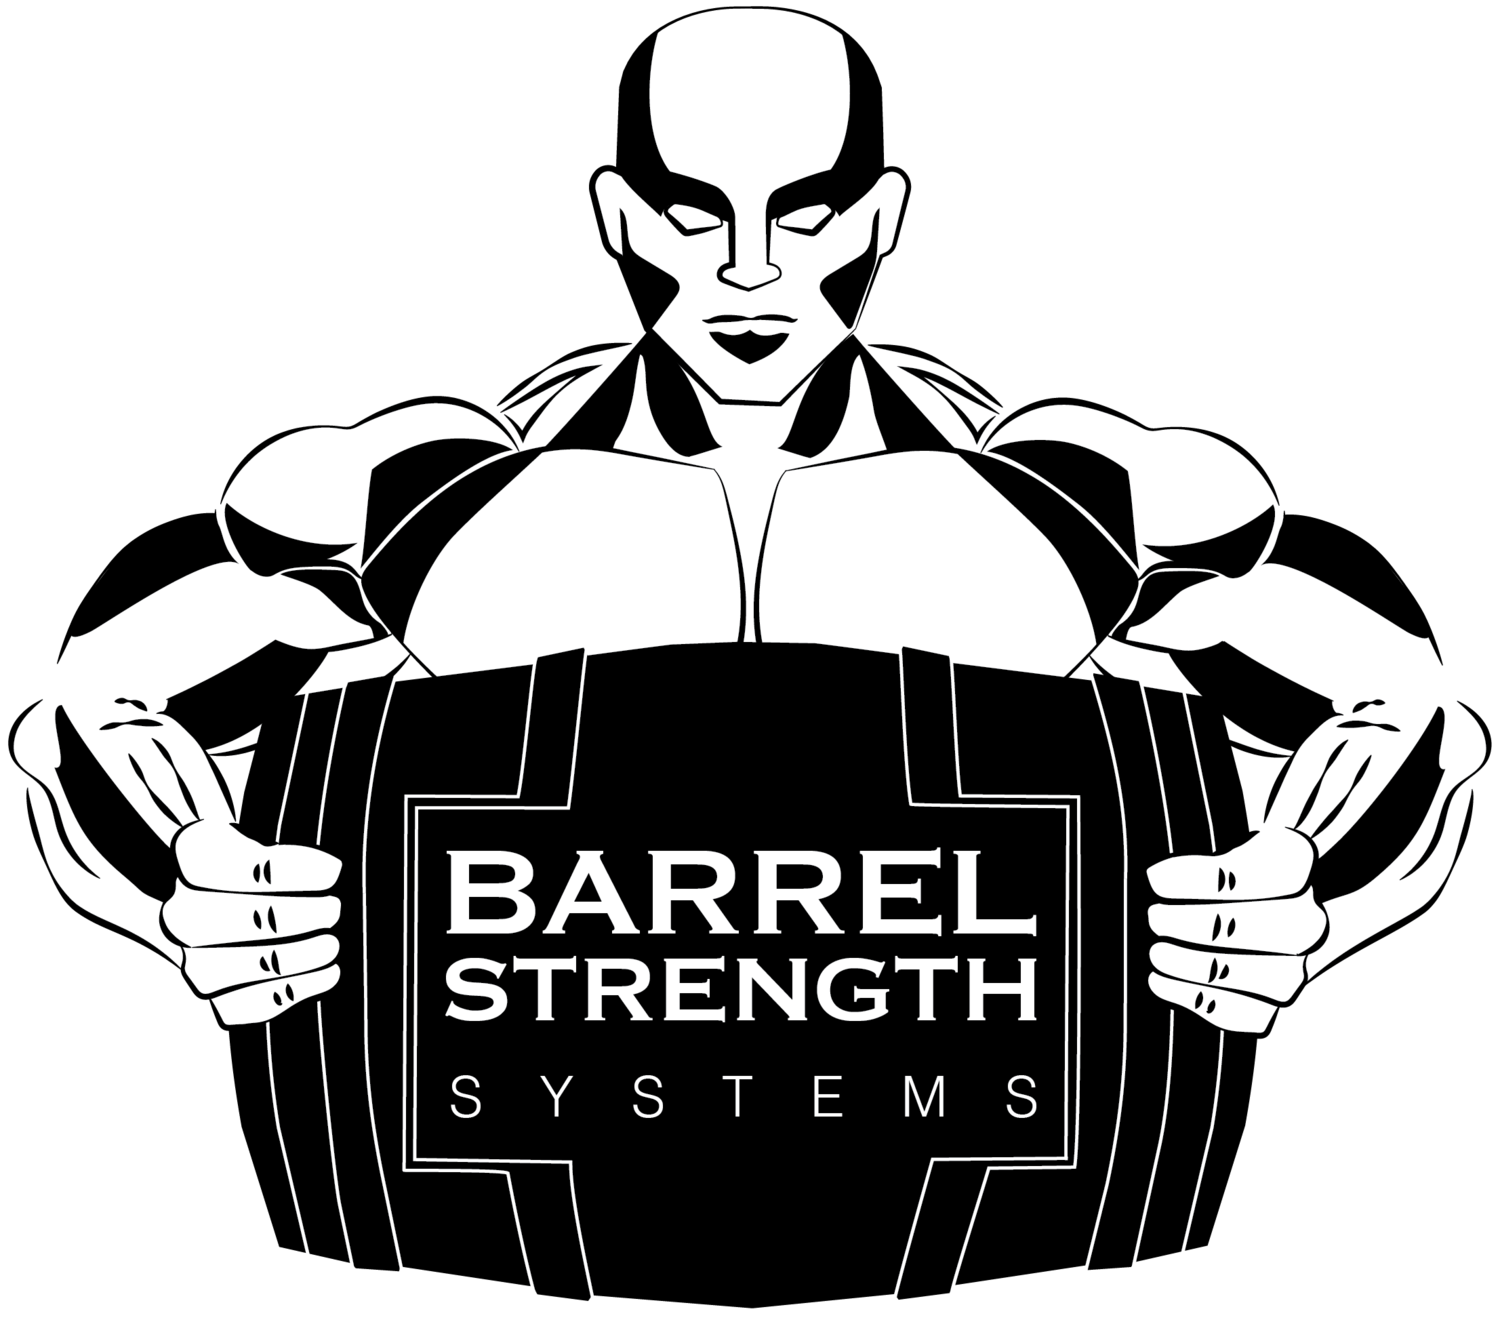 Barrel Strength Systems